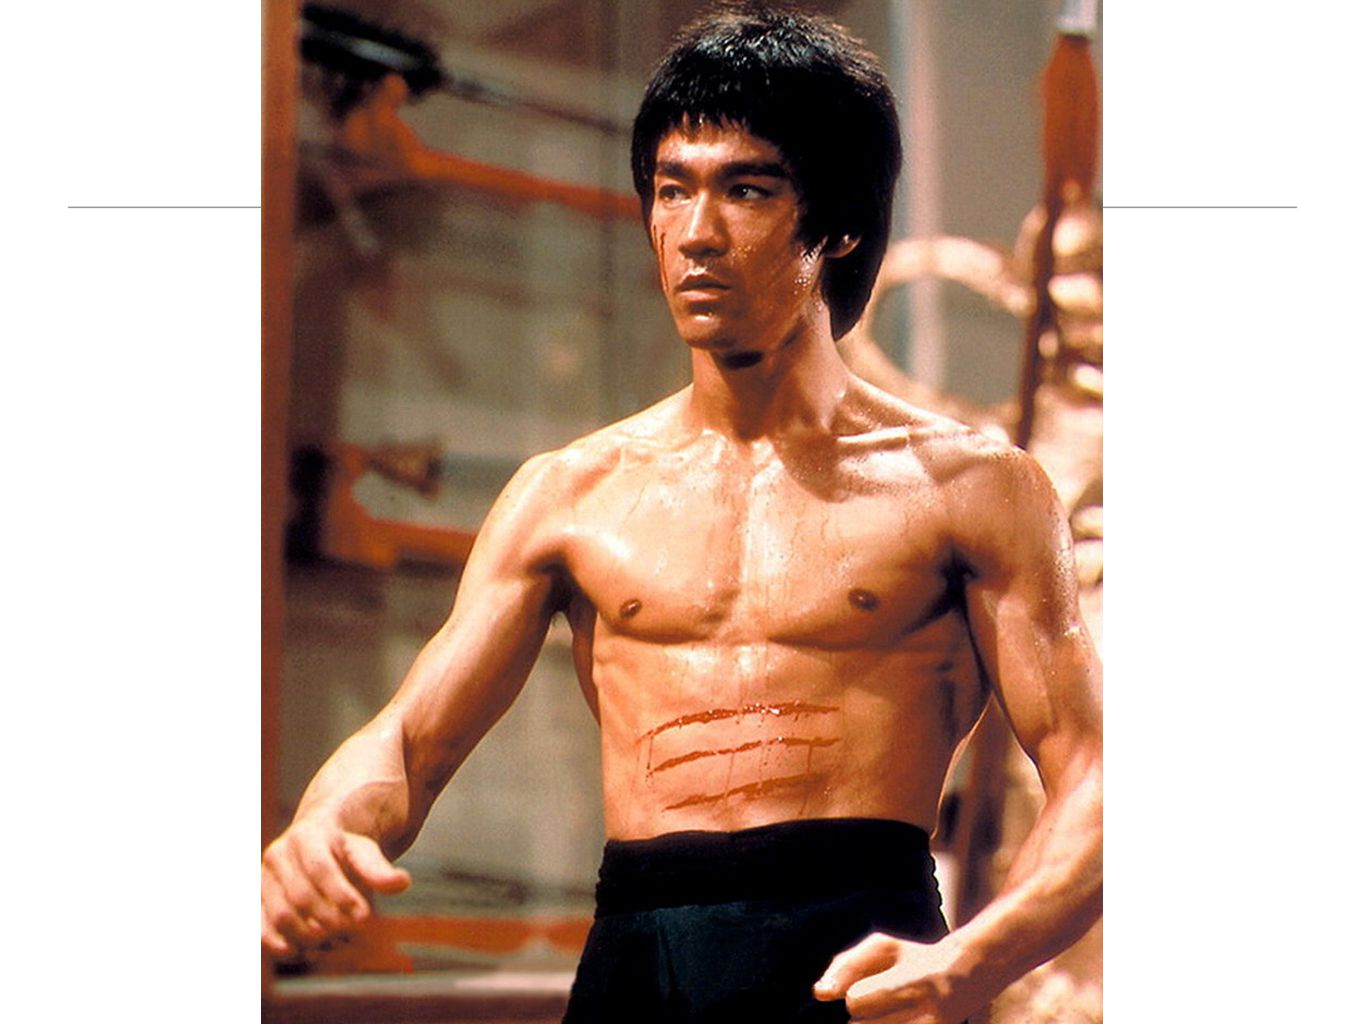 When I was young I want to be like Bruce Lee